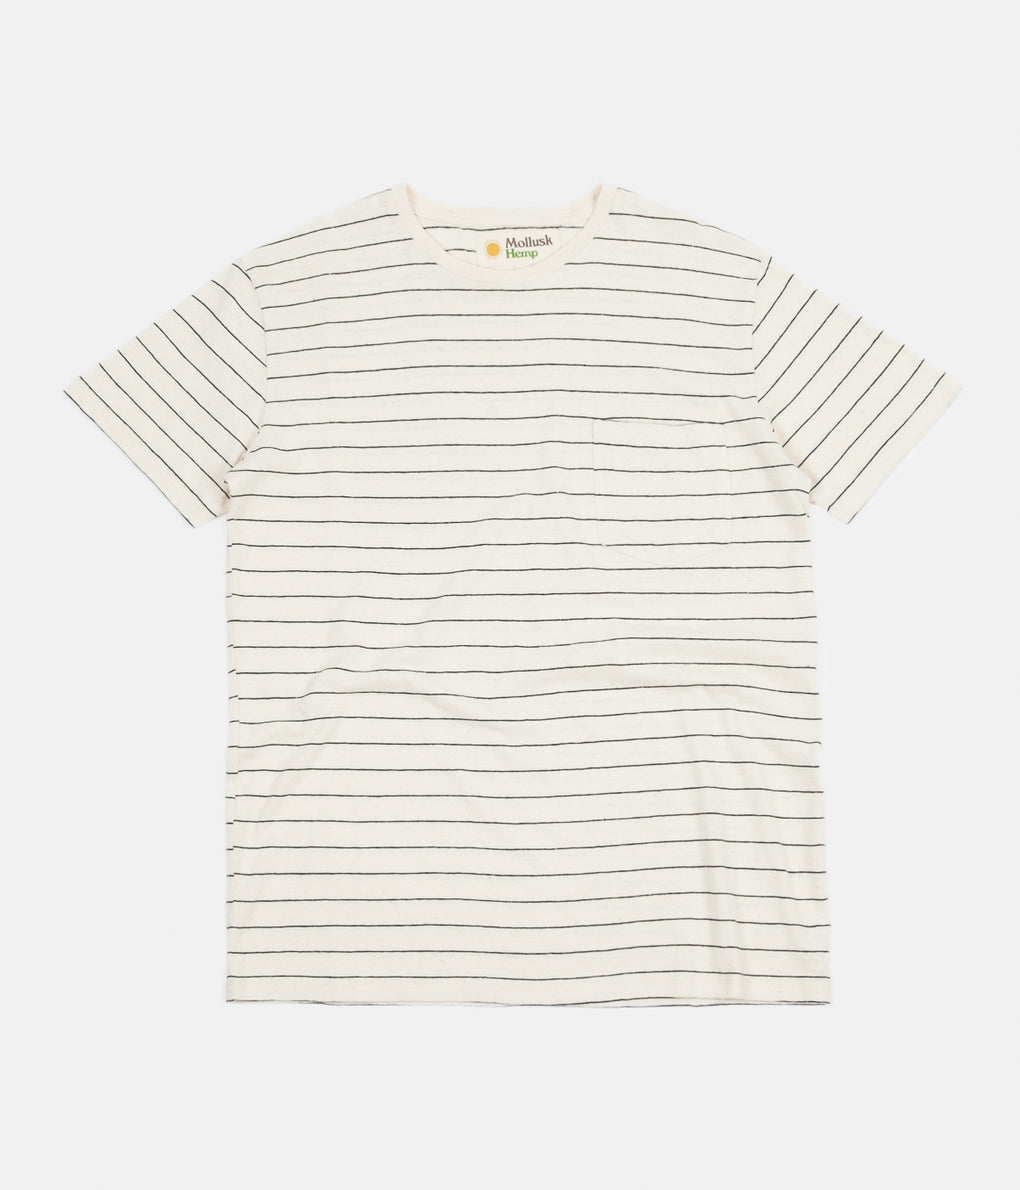 Mollusk Hemp Stripe T-Shirt - Natural / Indigo Stripe